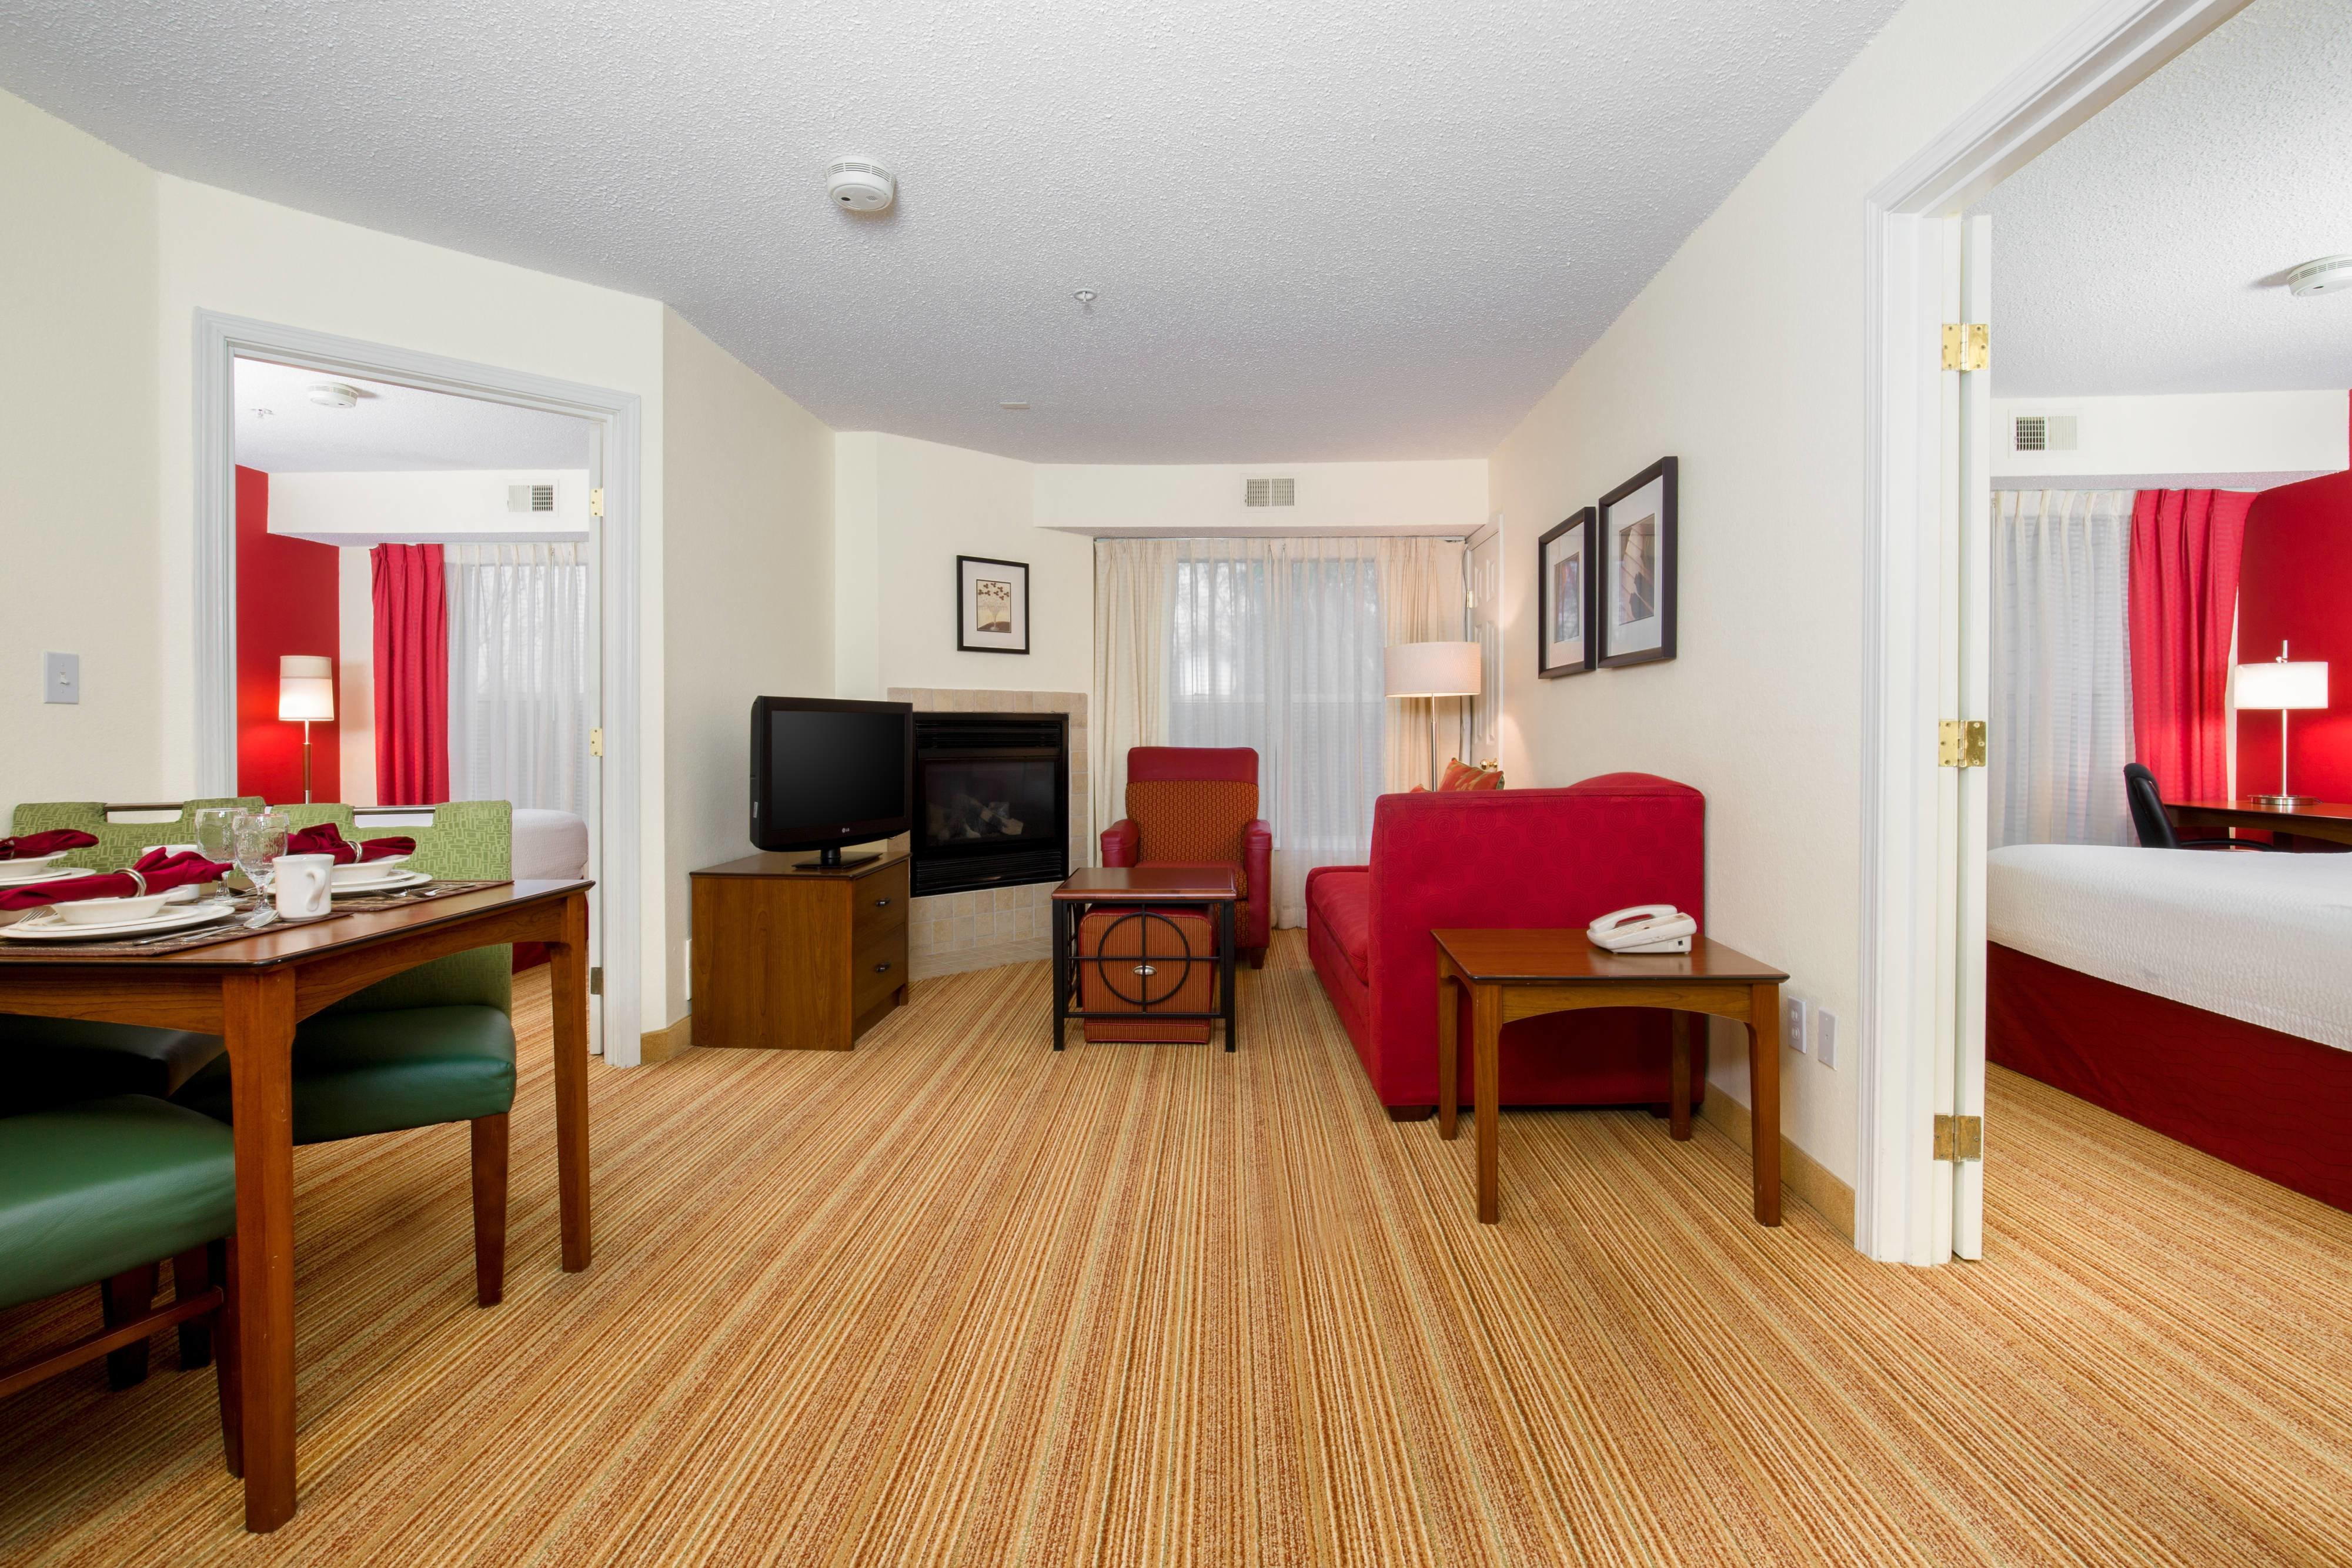 Best Extended Stay Hotels In Willowbrook Texas Residence Inn With Pictures